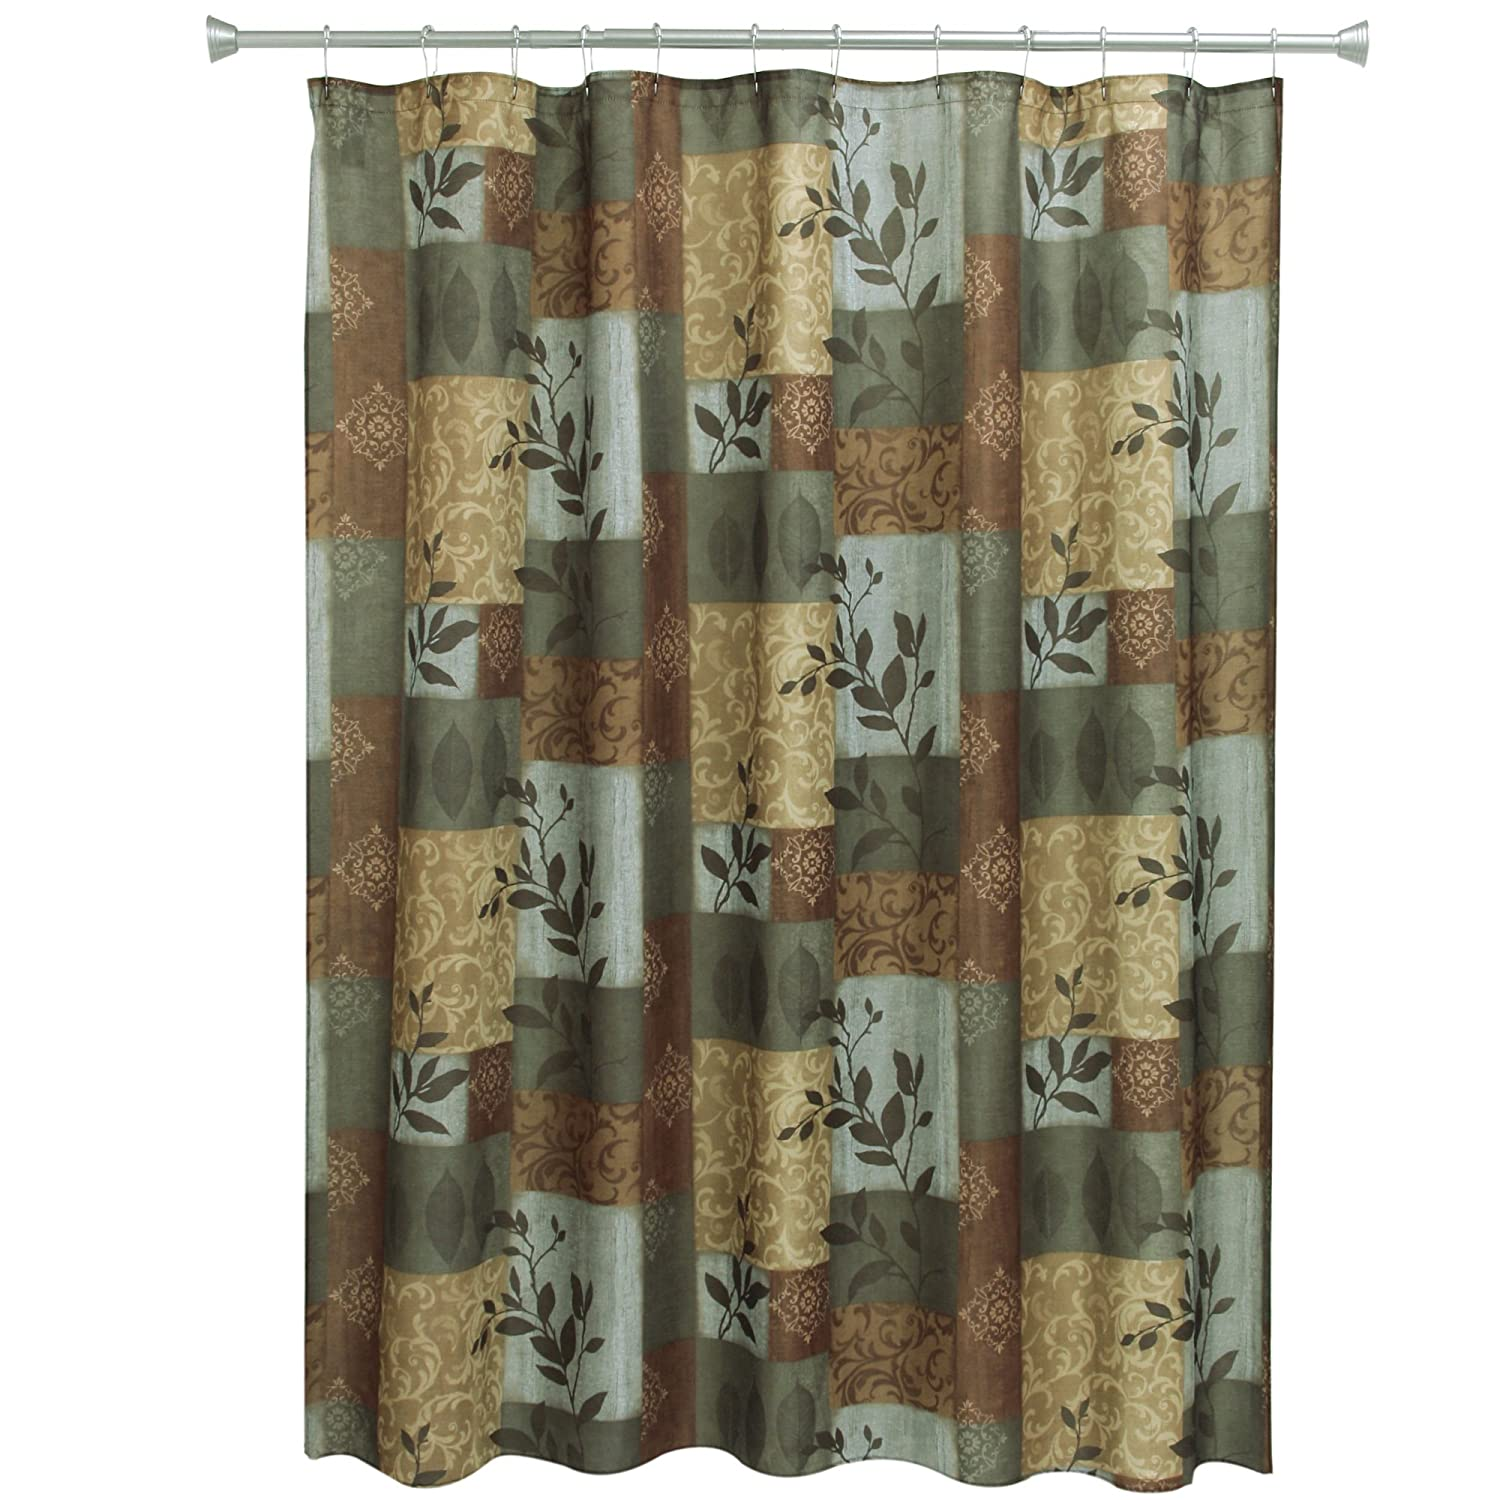 Amazon.com: Bacova Guild Shower Curtain, Autumn Leaves: Home & Kitchen